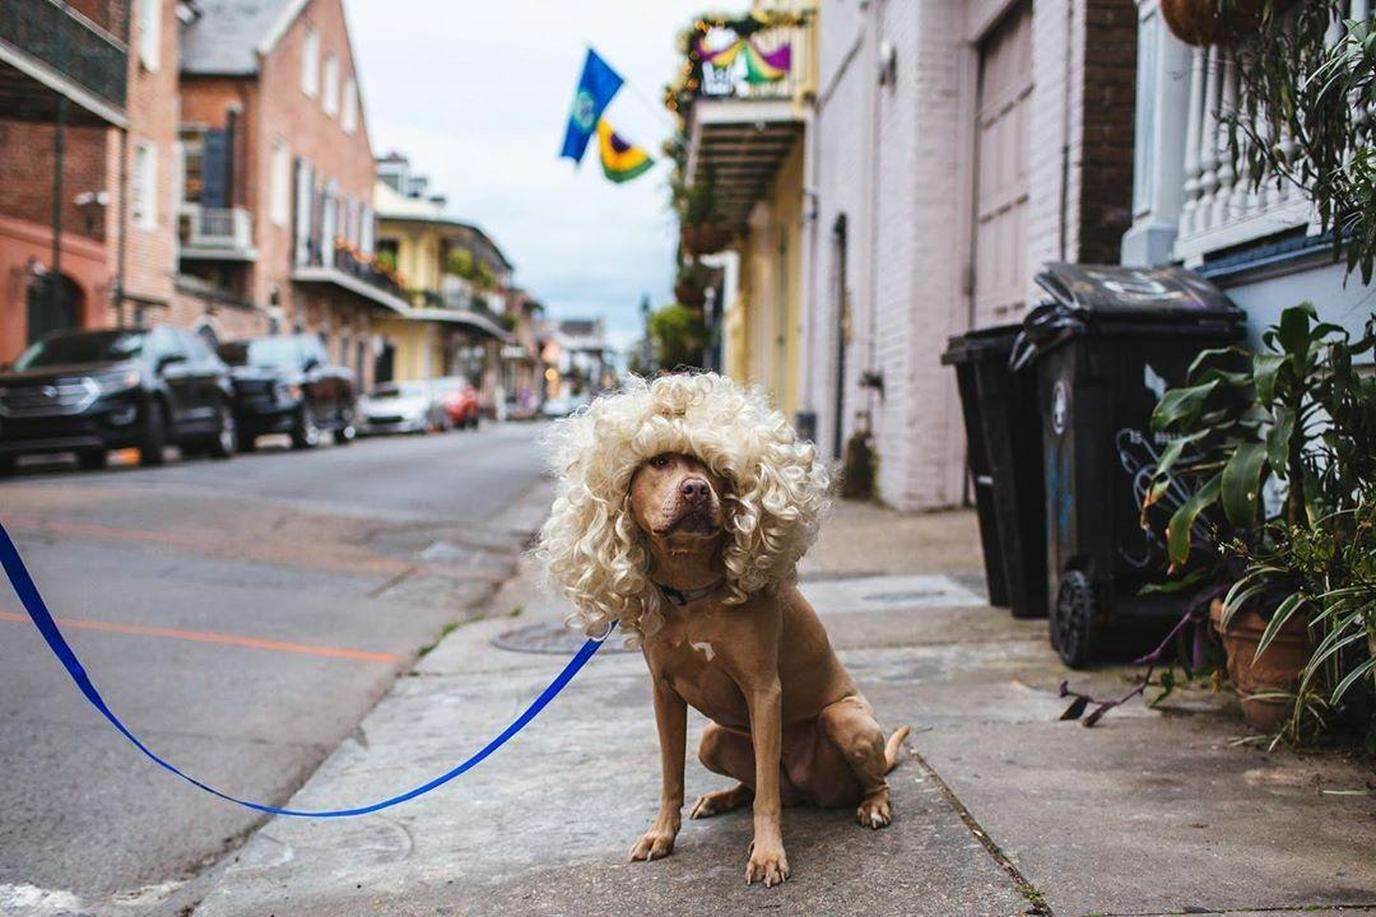 A dog on New Orleans Parade